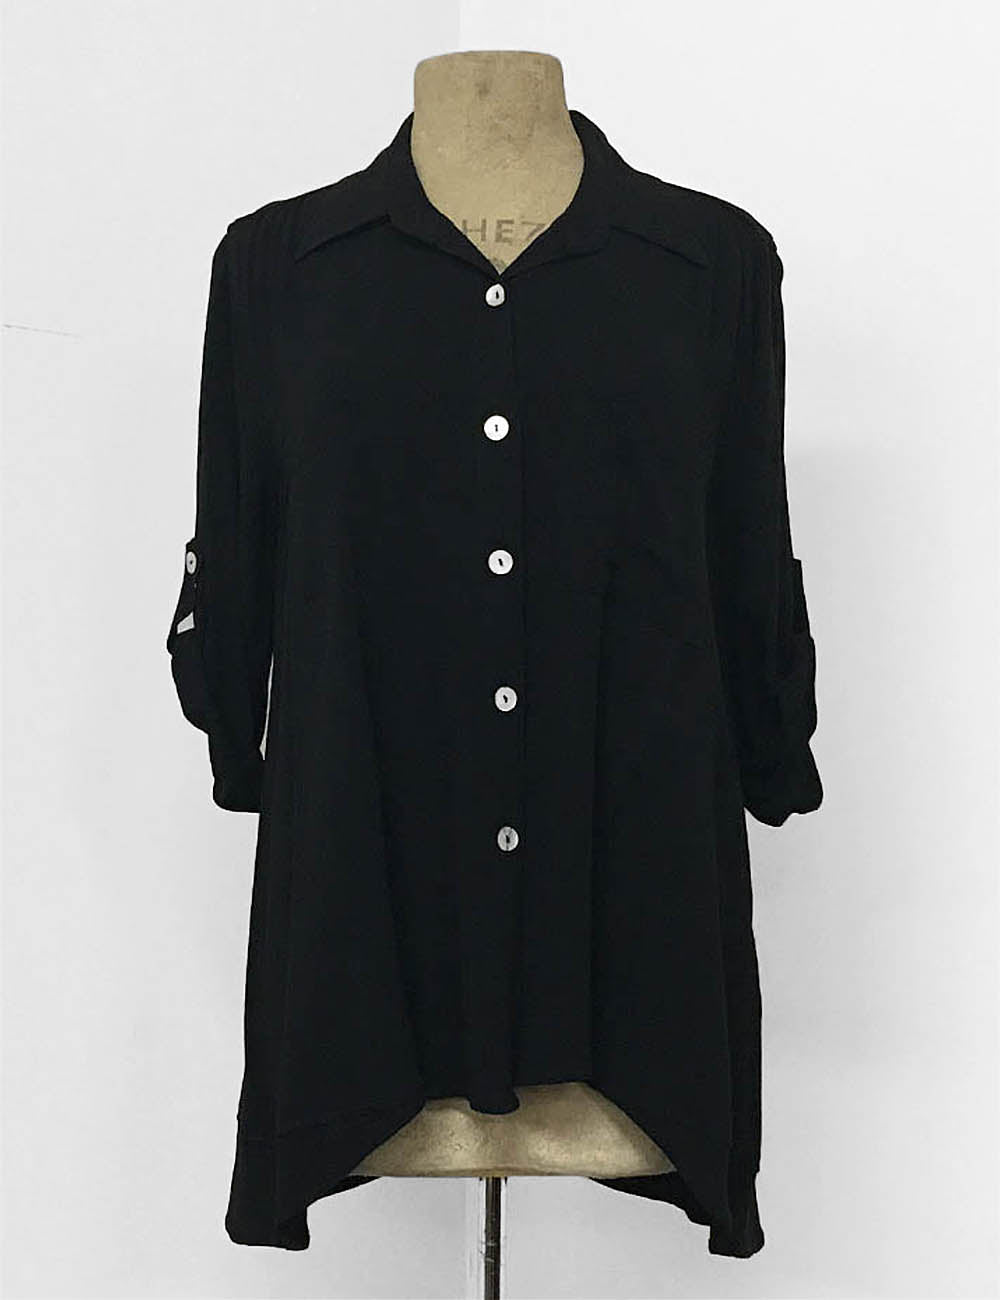 Solid Black Button Up Collared Hi-Low Blouse - FINAL SALE